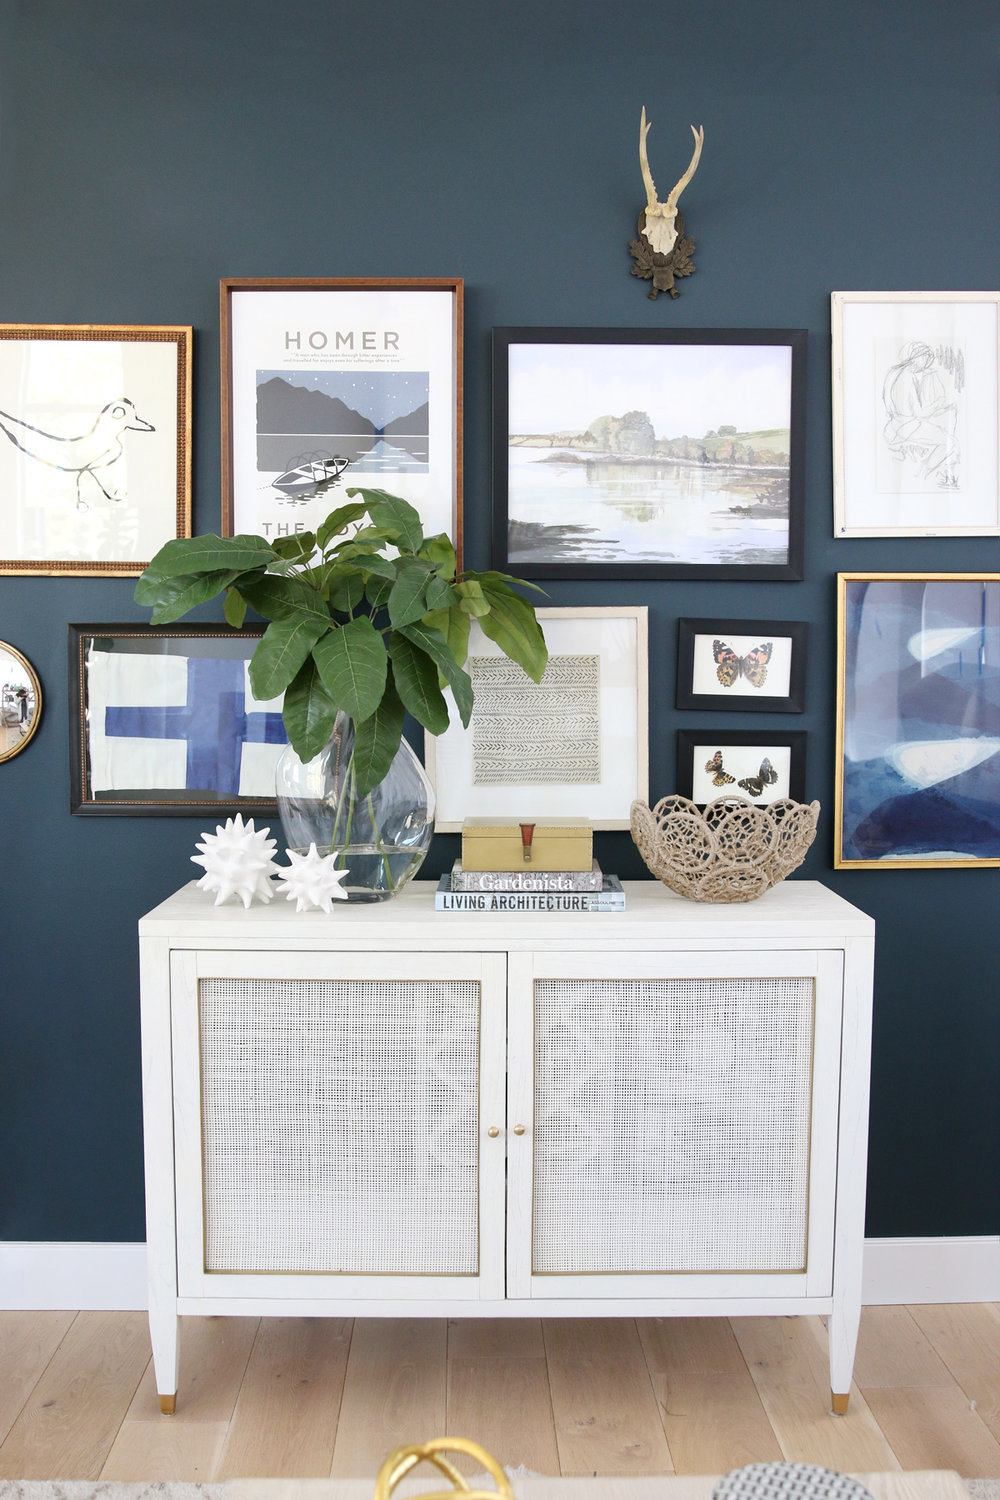 HOW TO CREATE ECLECTIC GALLERY WALL